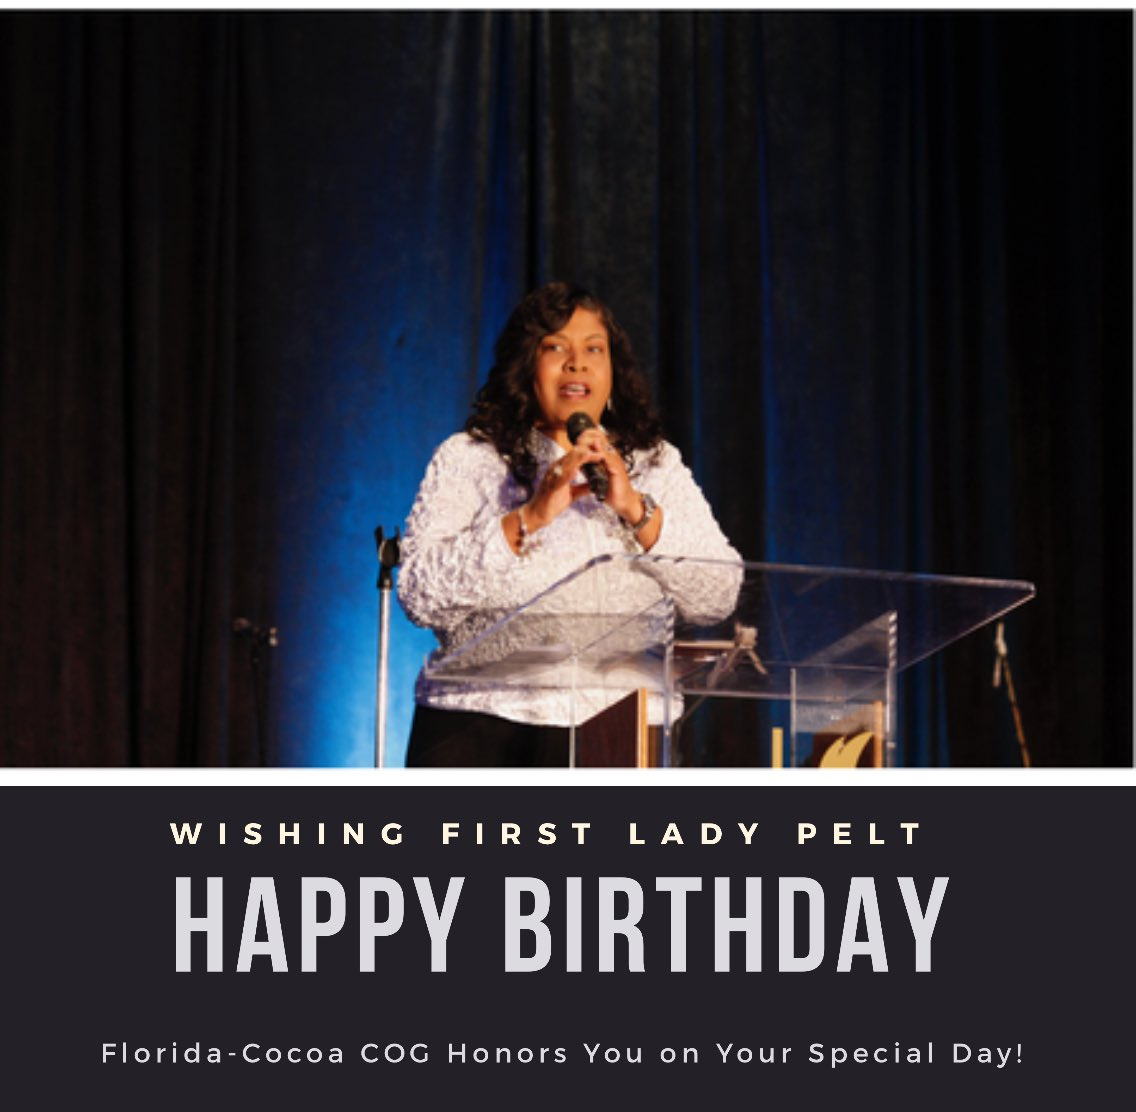 test Twitter Media - Happy Birthday Lady Pelt!!! Florida-Cocoa celebrates and thanks God for you being in our lives and leading alongside Bishop Pelt. #HappyBirthday #Babydoll #CocoaStrong #FirstLady #ChurchOfGod https://t.co/8XXUSeSjMY